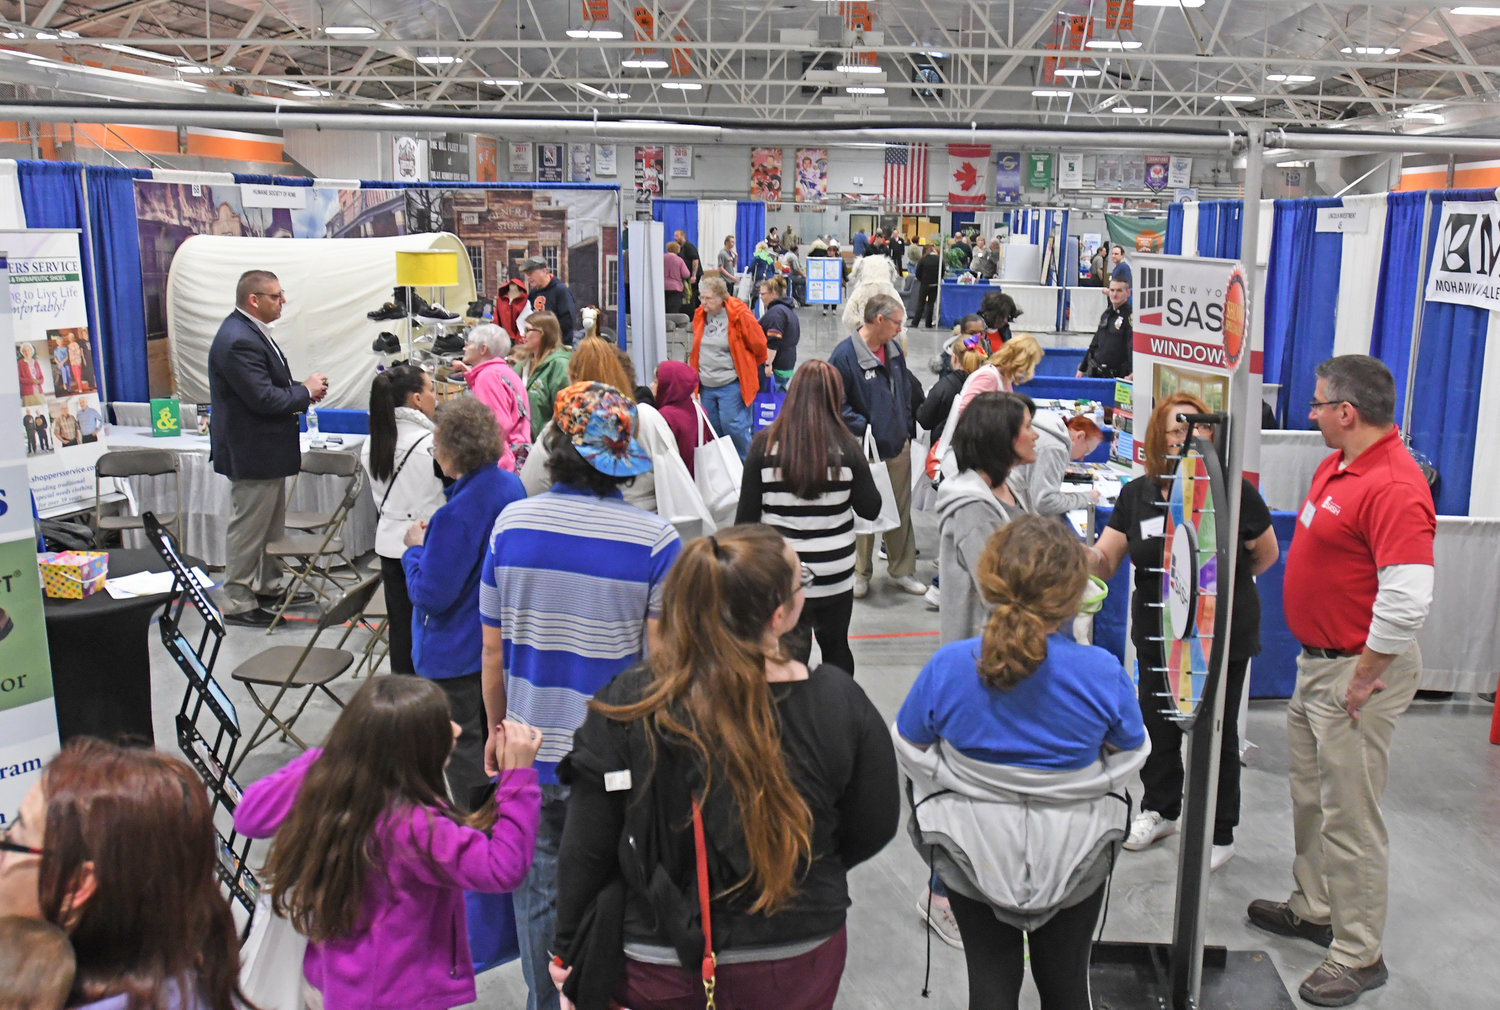 TAKING IT ALL IN — Visitors walk through the different booths on the vendor floor at the Rome Home EXPO held Saturday and Sunday at the J.F. Kennedy Civic Arena, 500 W. Embargo St.